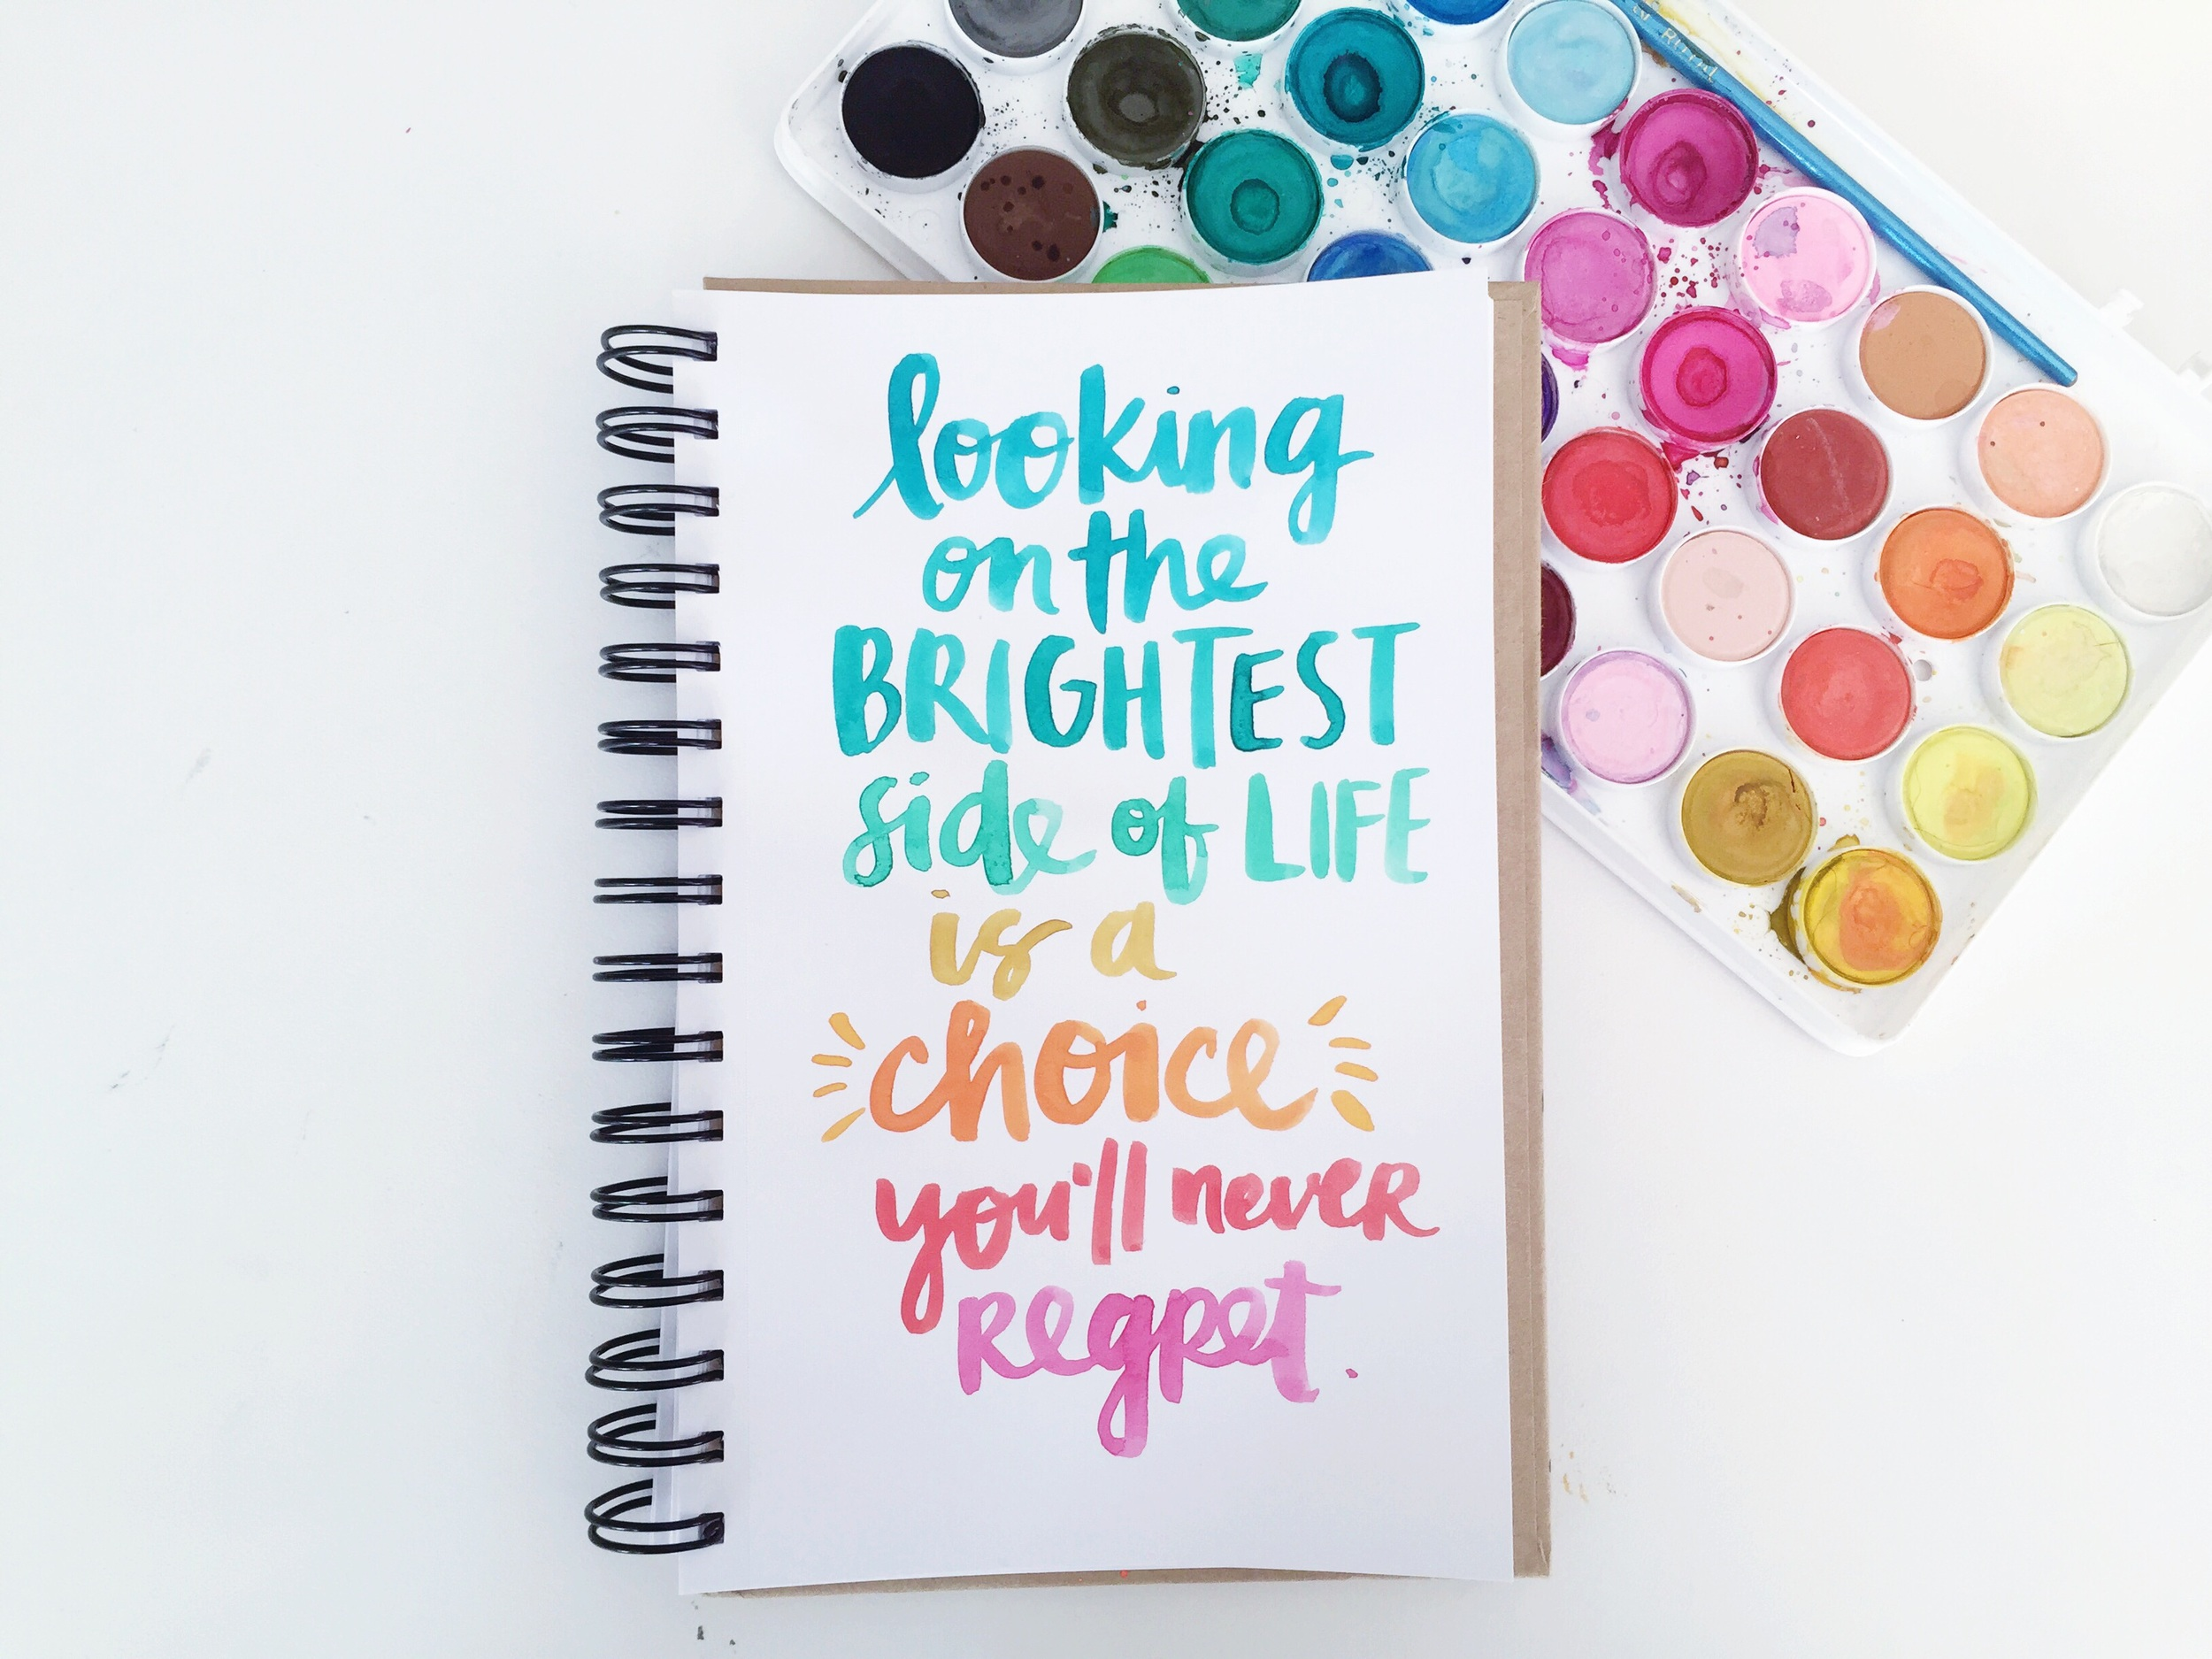 looking on the brightest side of life is a choice you'll never regret.